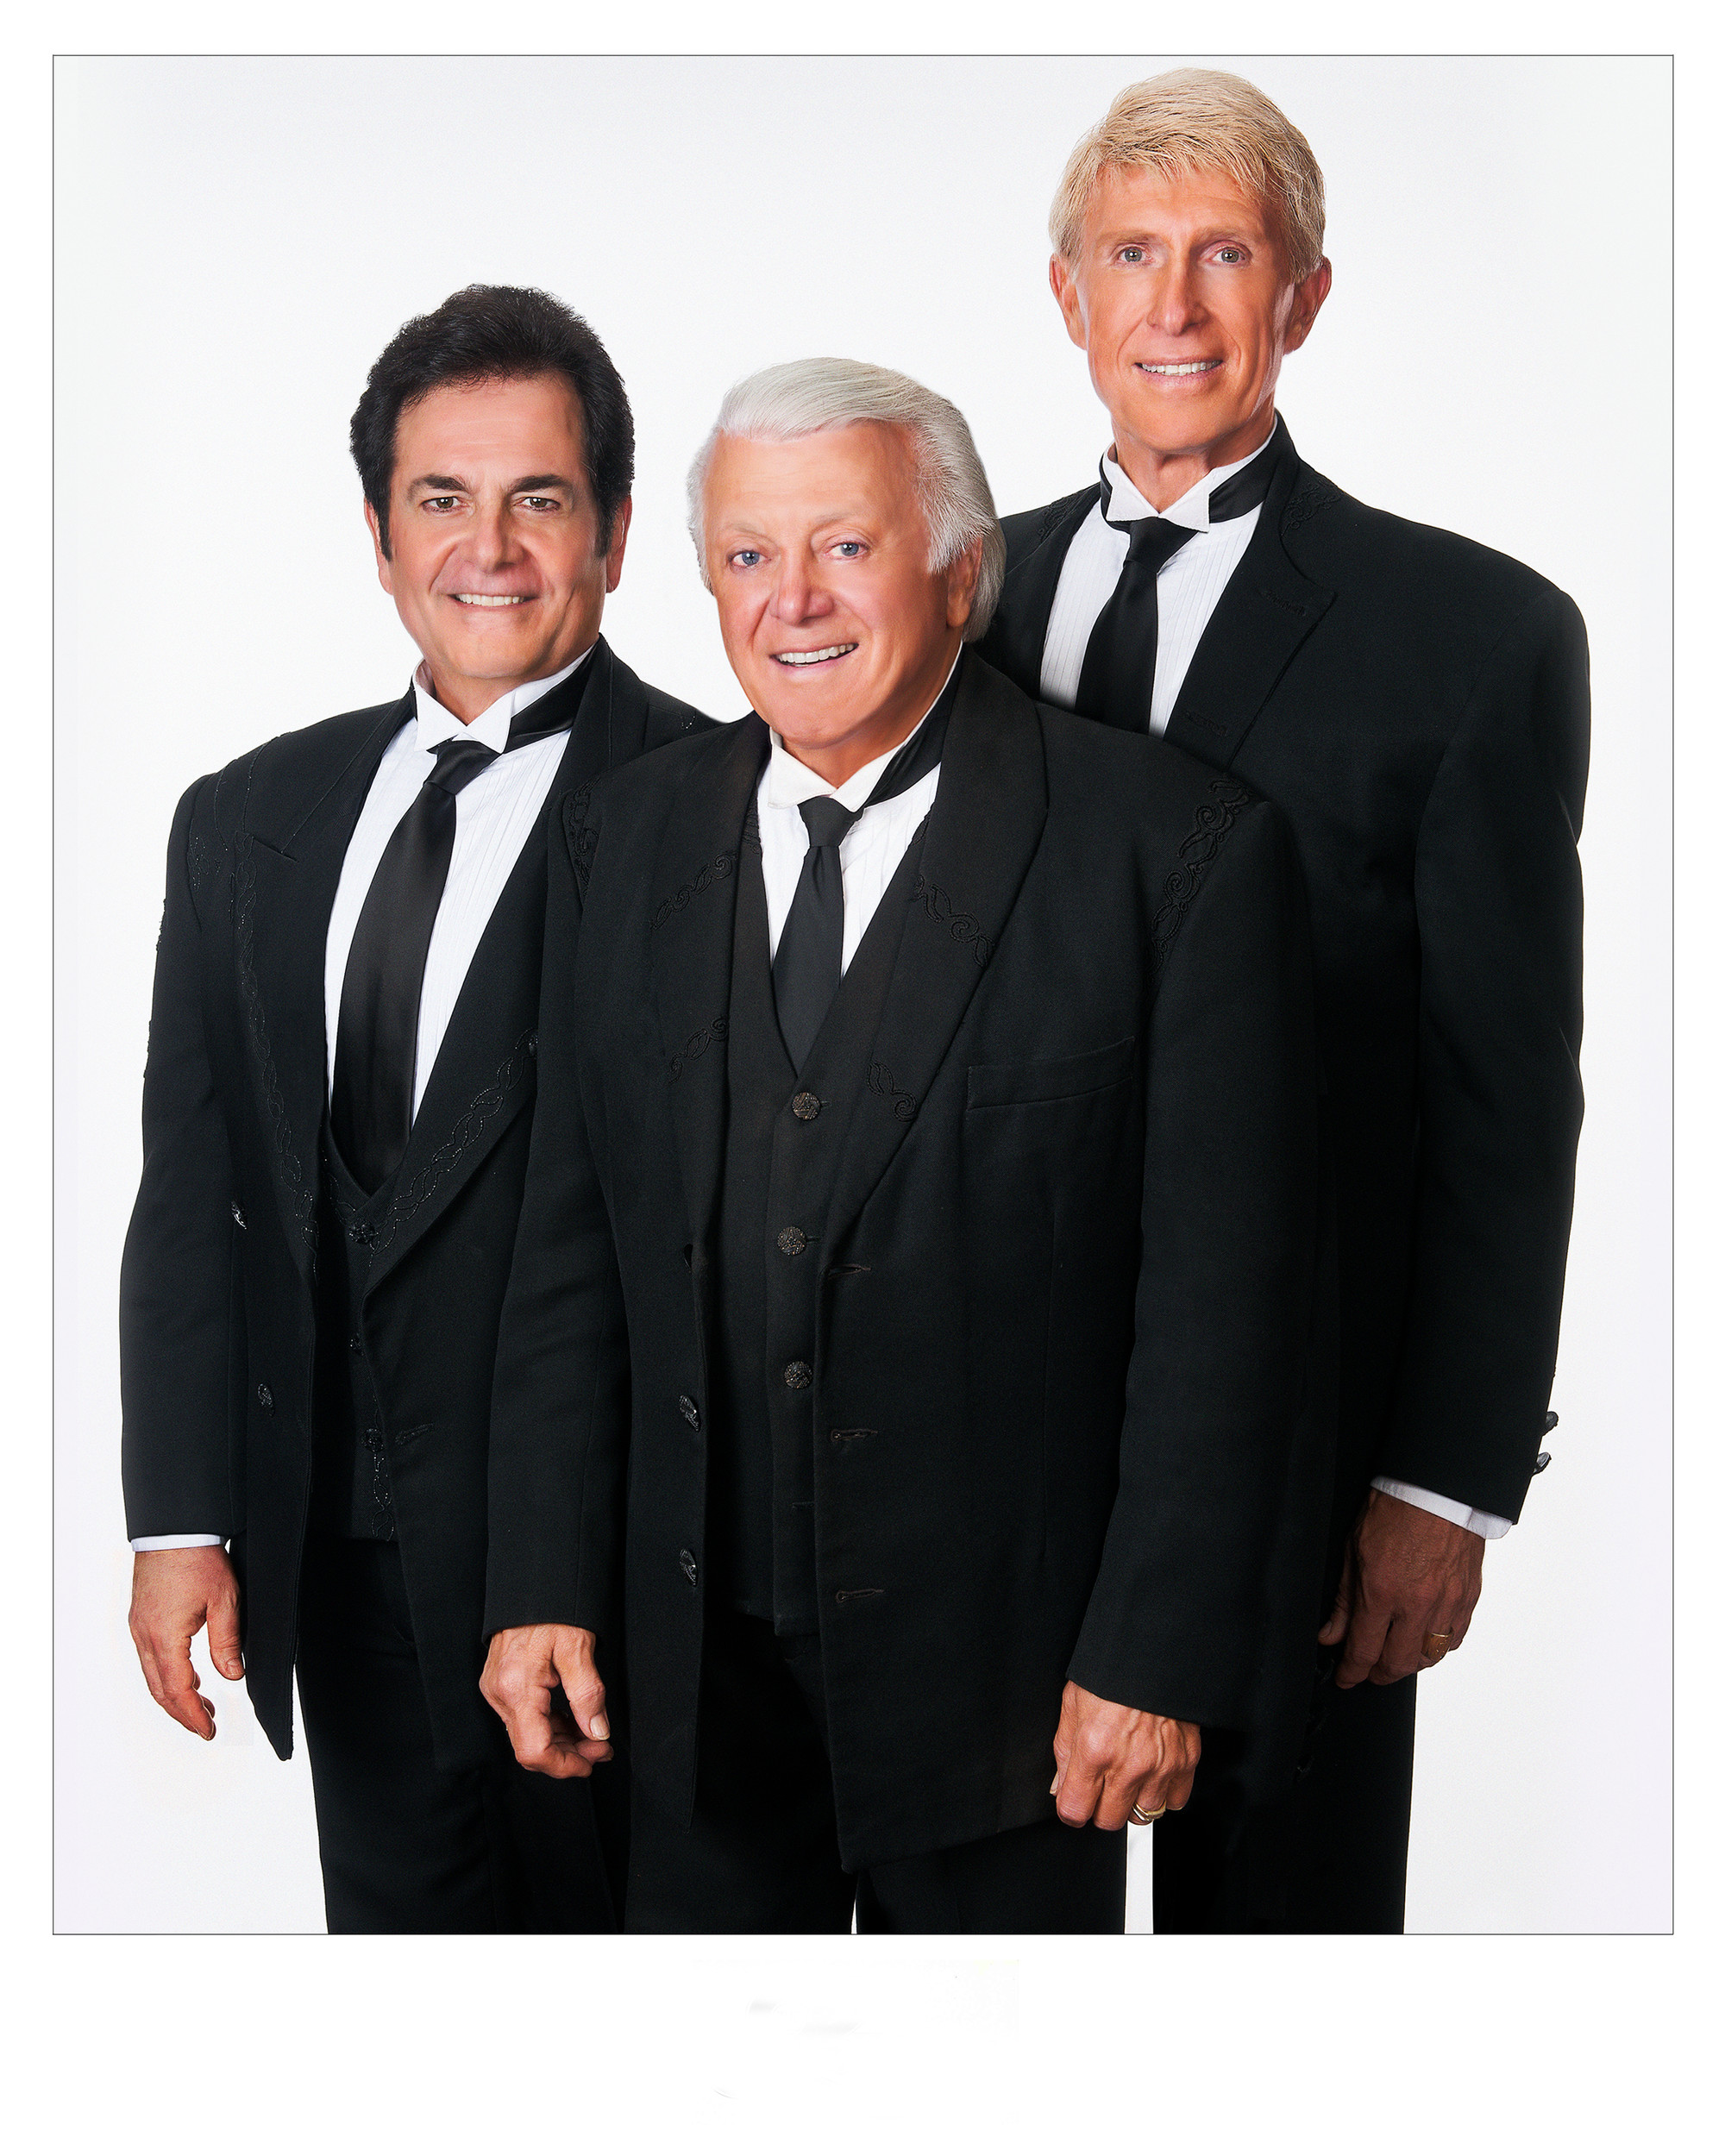 The Lettermen bring their love songs in three-part harmony to Sumter Opera House's Main Stage Series on Jan. 14, 2018.